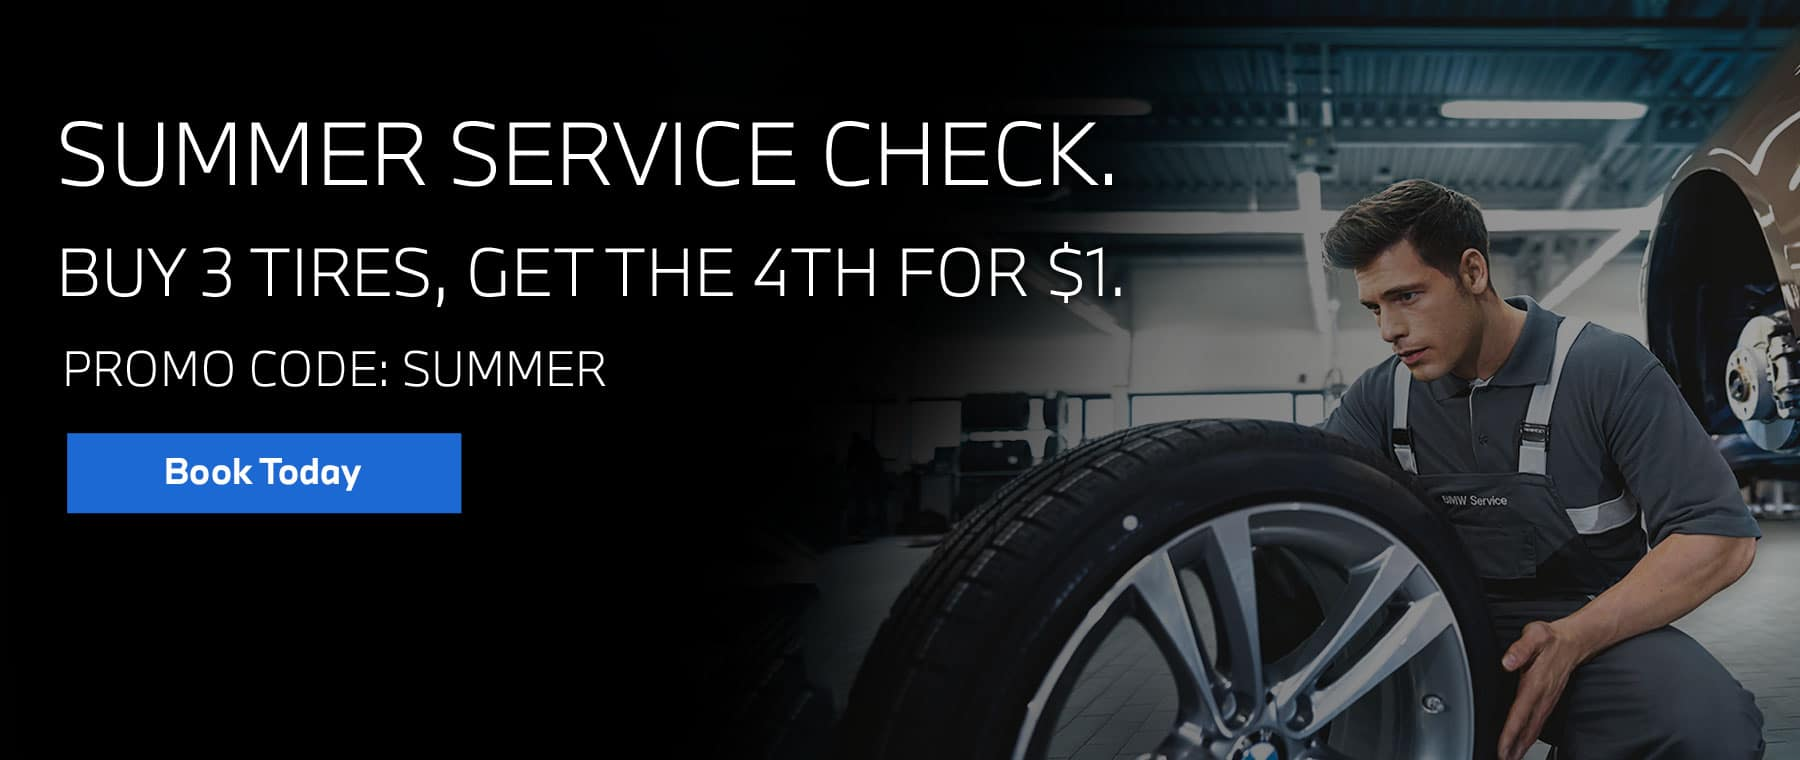 Summer Service Check, Buy 3 Tires, Get the 4th for $1.